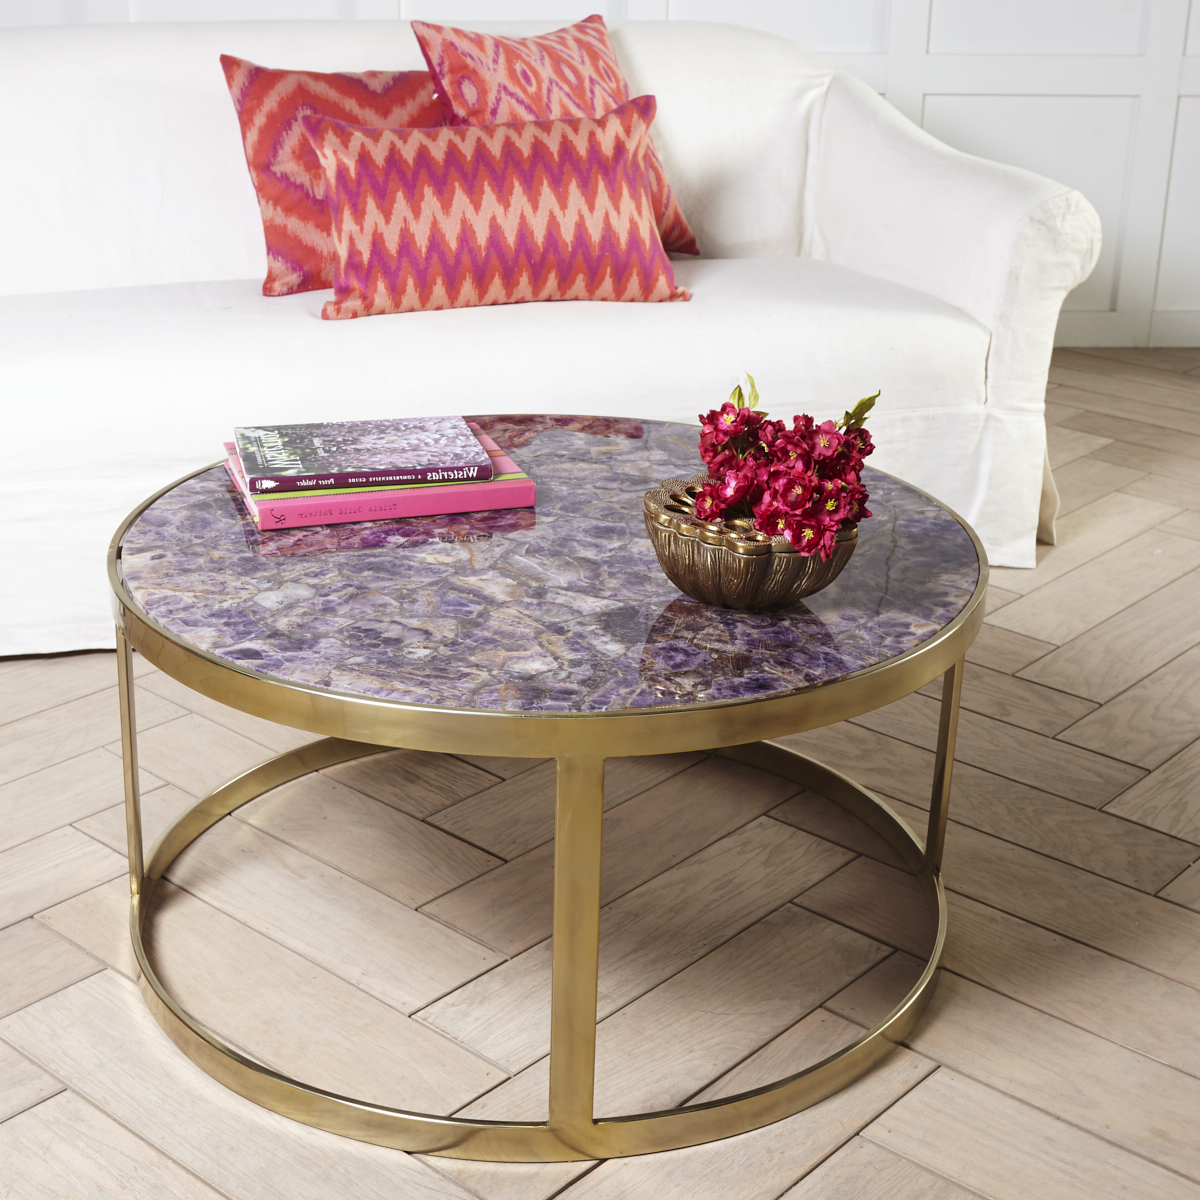 Broll Coffee Tables For Best And Newest Stone Top Coffee Table (View 17 of 20)